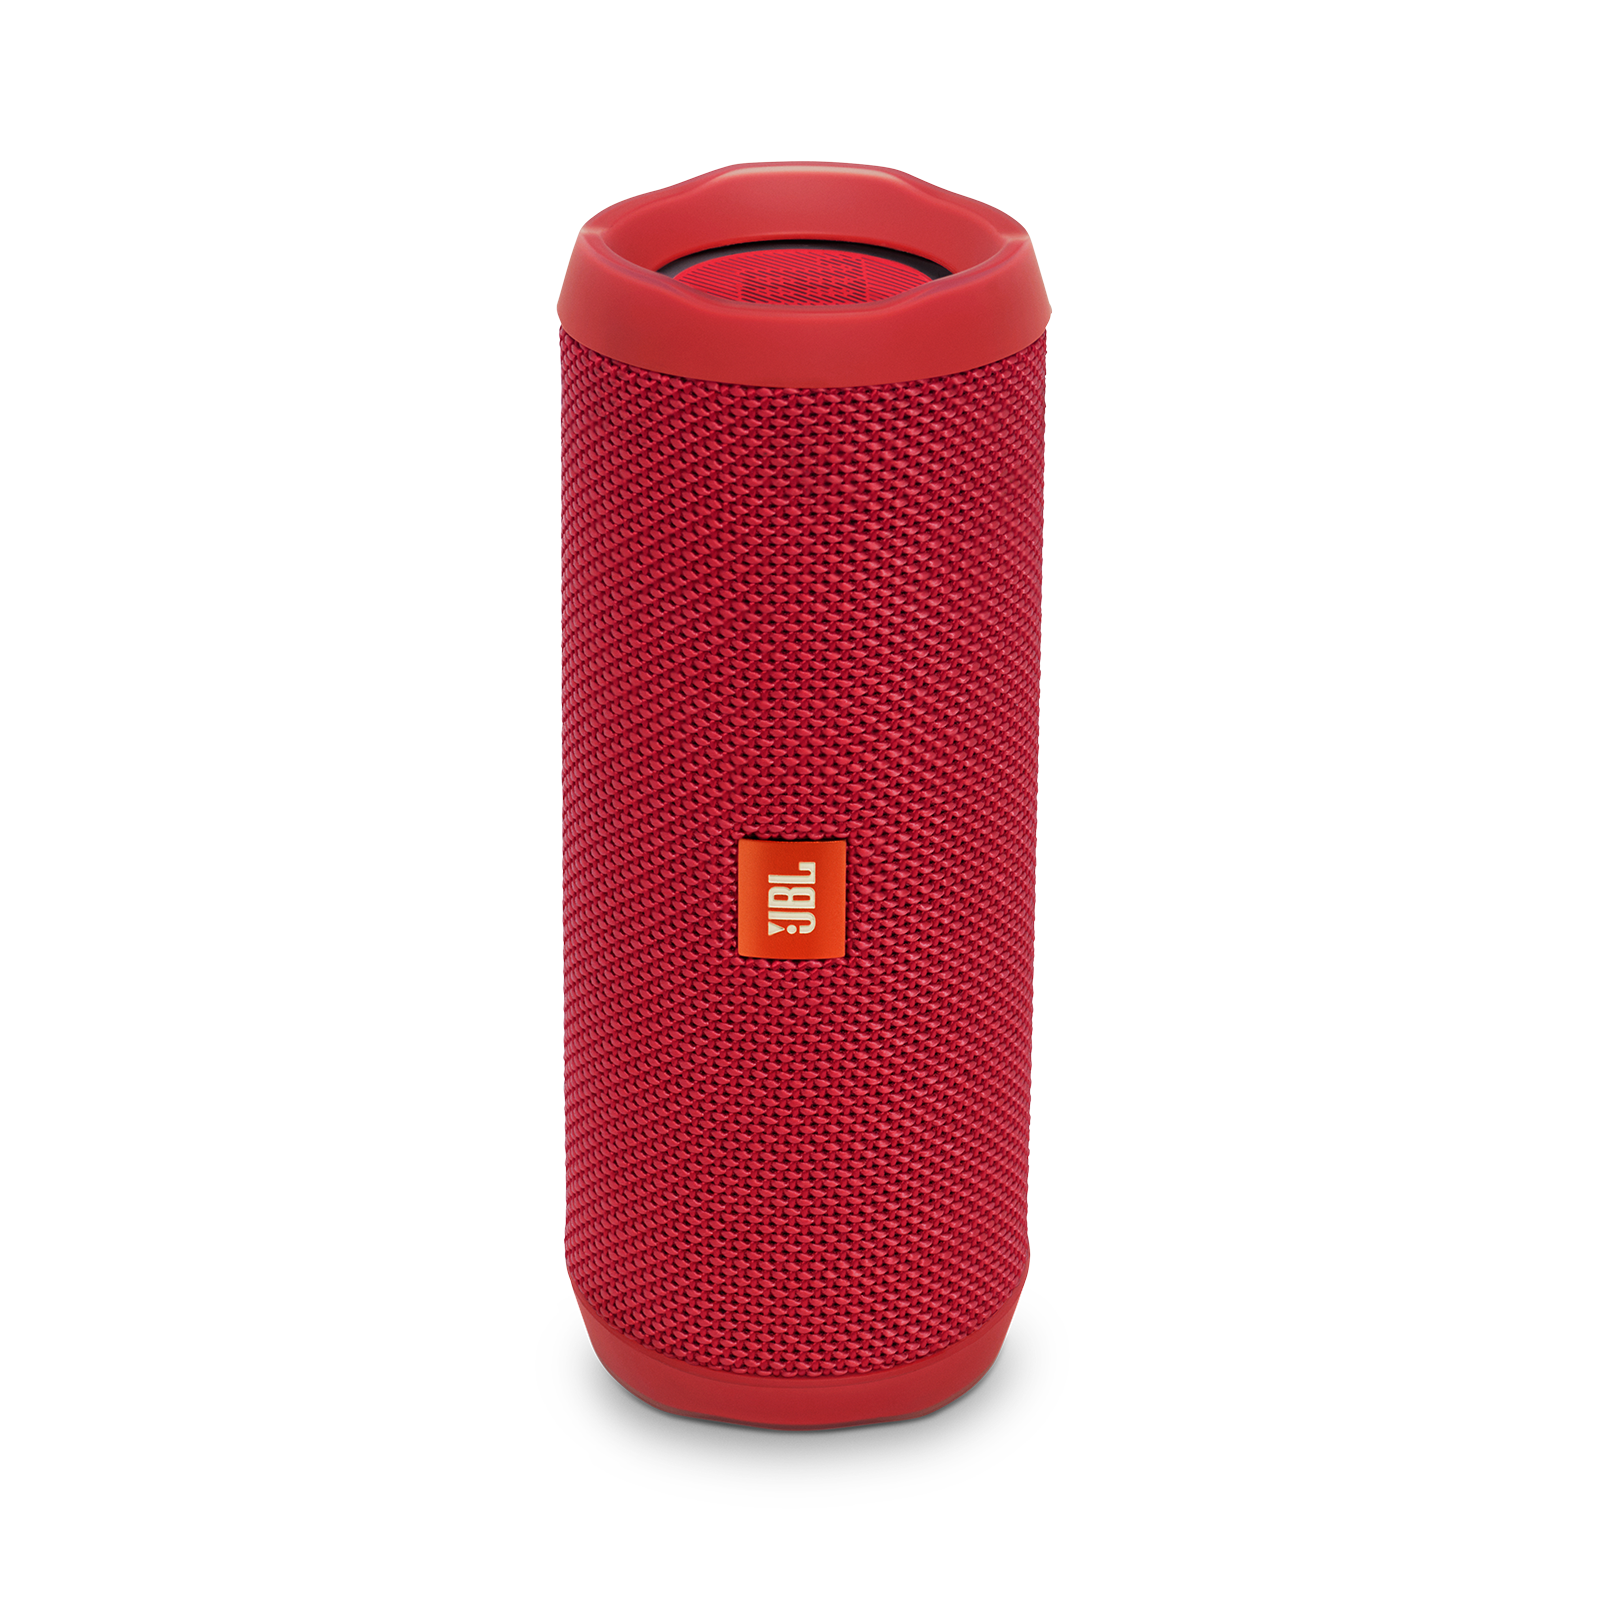 JBL Flip 4 - Red - A full-featured waterproof portable Bluetooth speaker with surprisingly powerful sound. - Hero